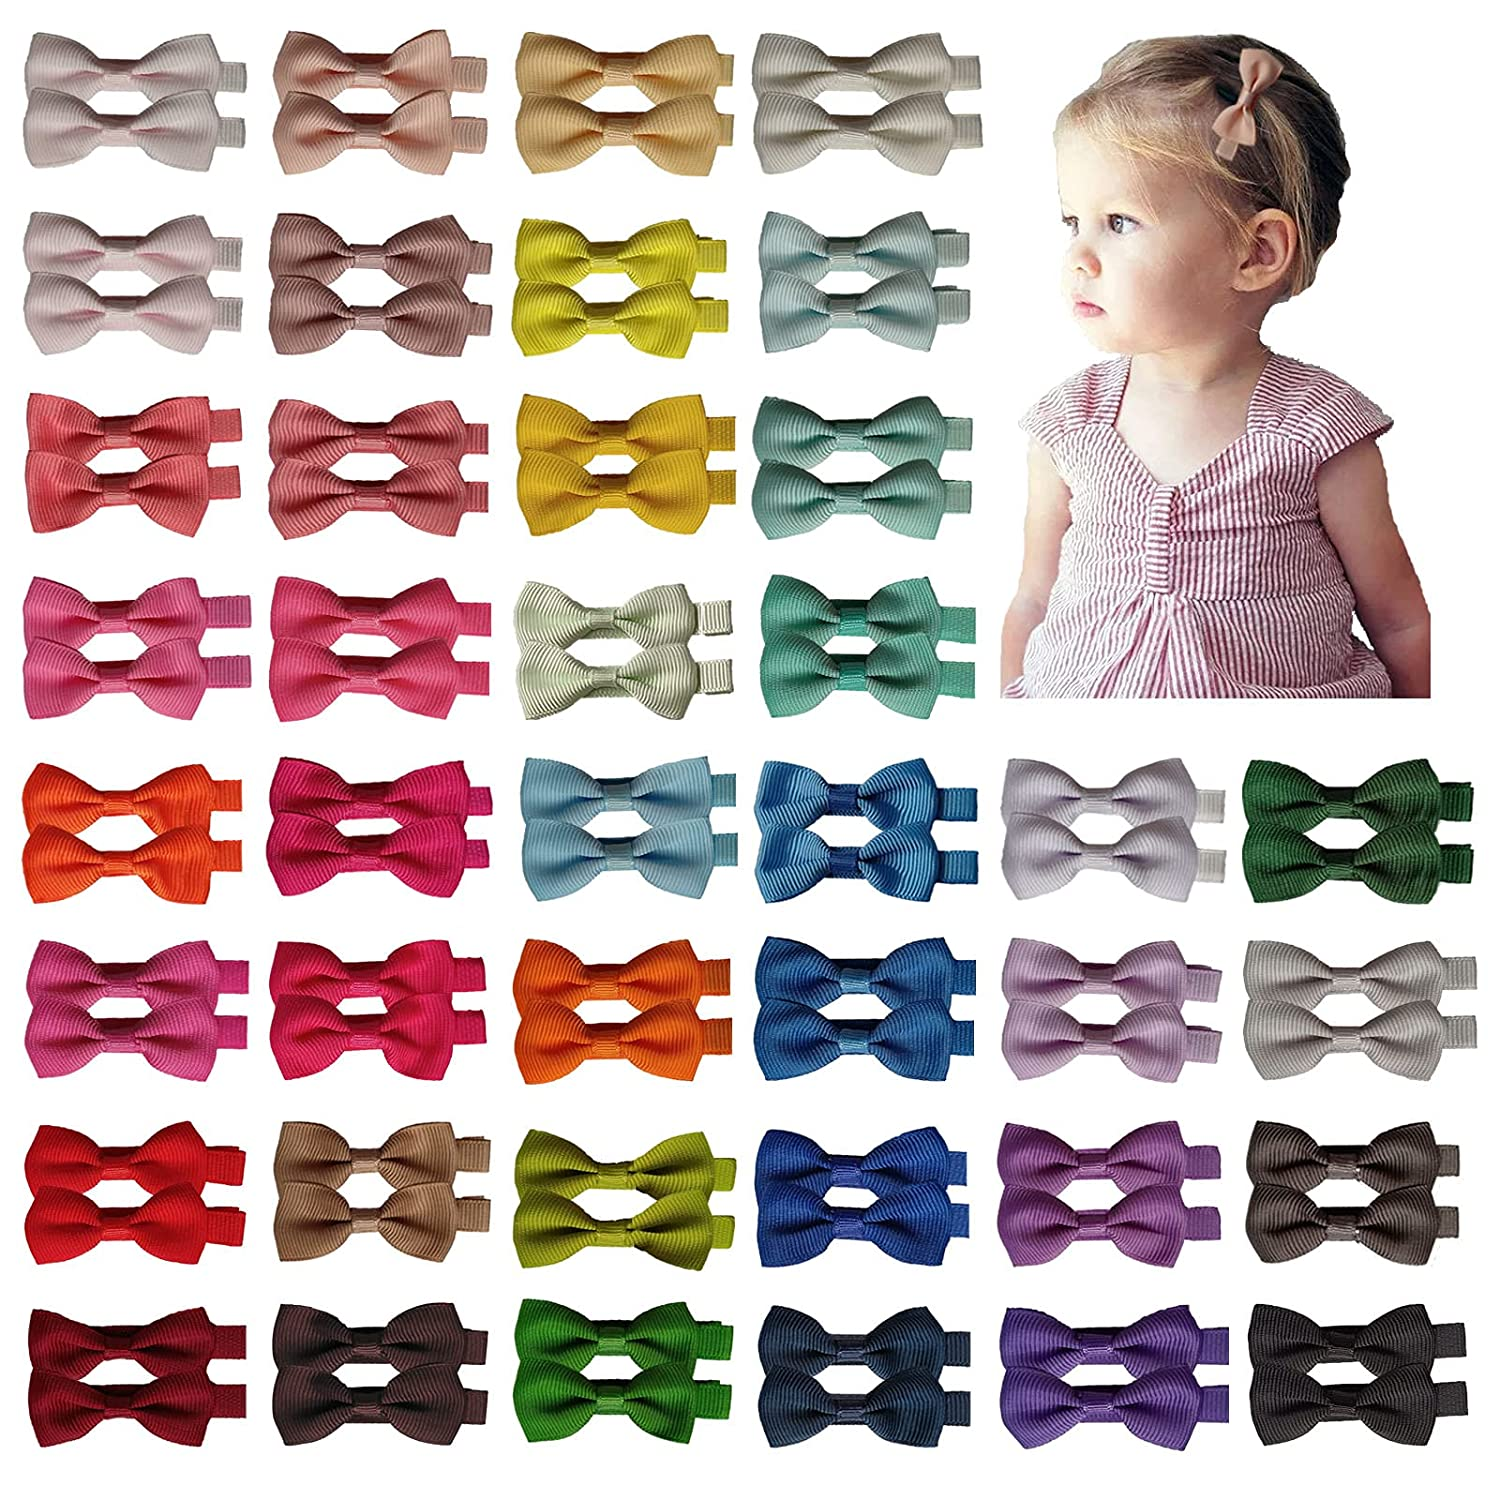 80 Pieces Boutique Grosgrain Ribbon 2 inches Fully Lined Hair Bows Alligator Clips For Girls Babies Toddlers and Infants Gifts in Pairs